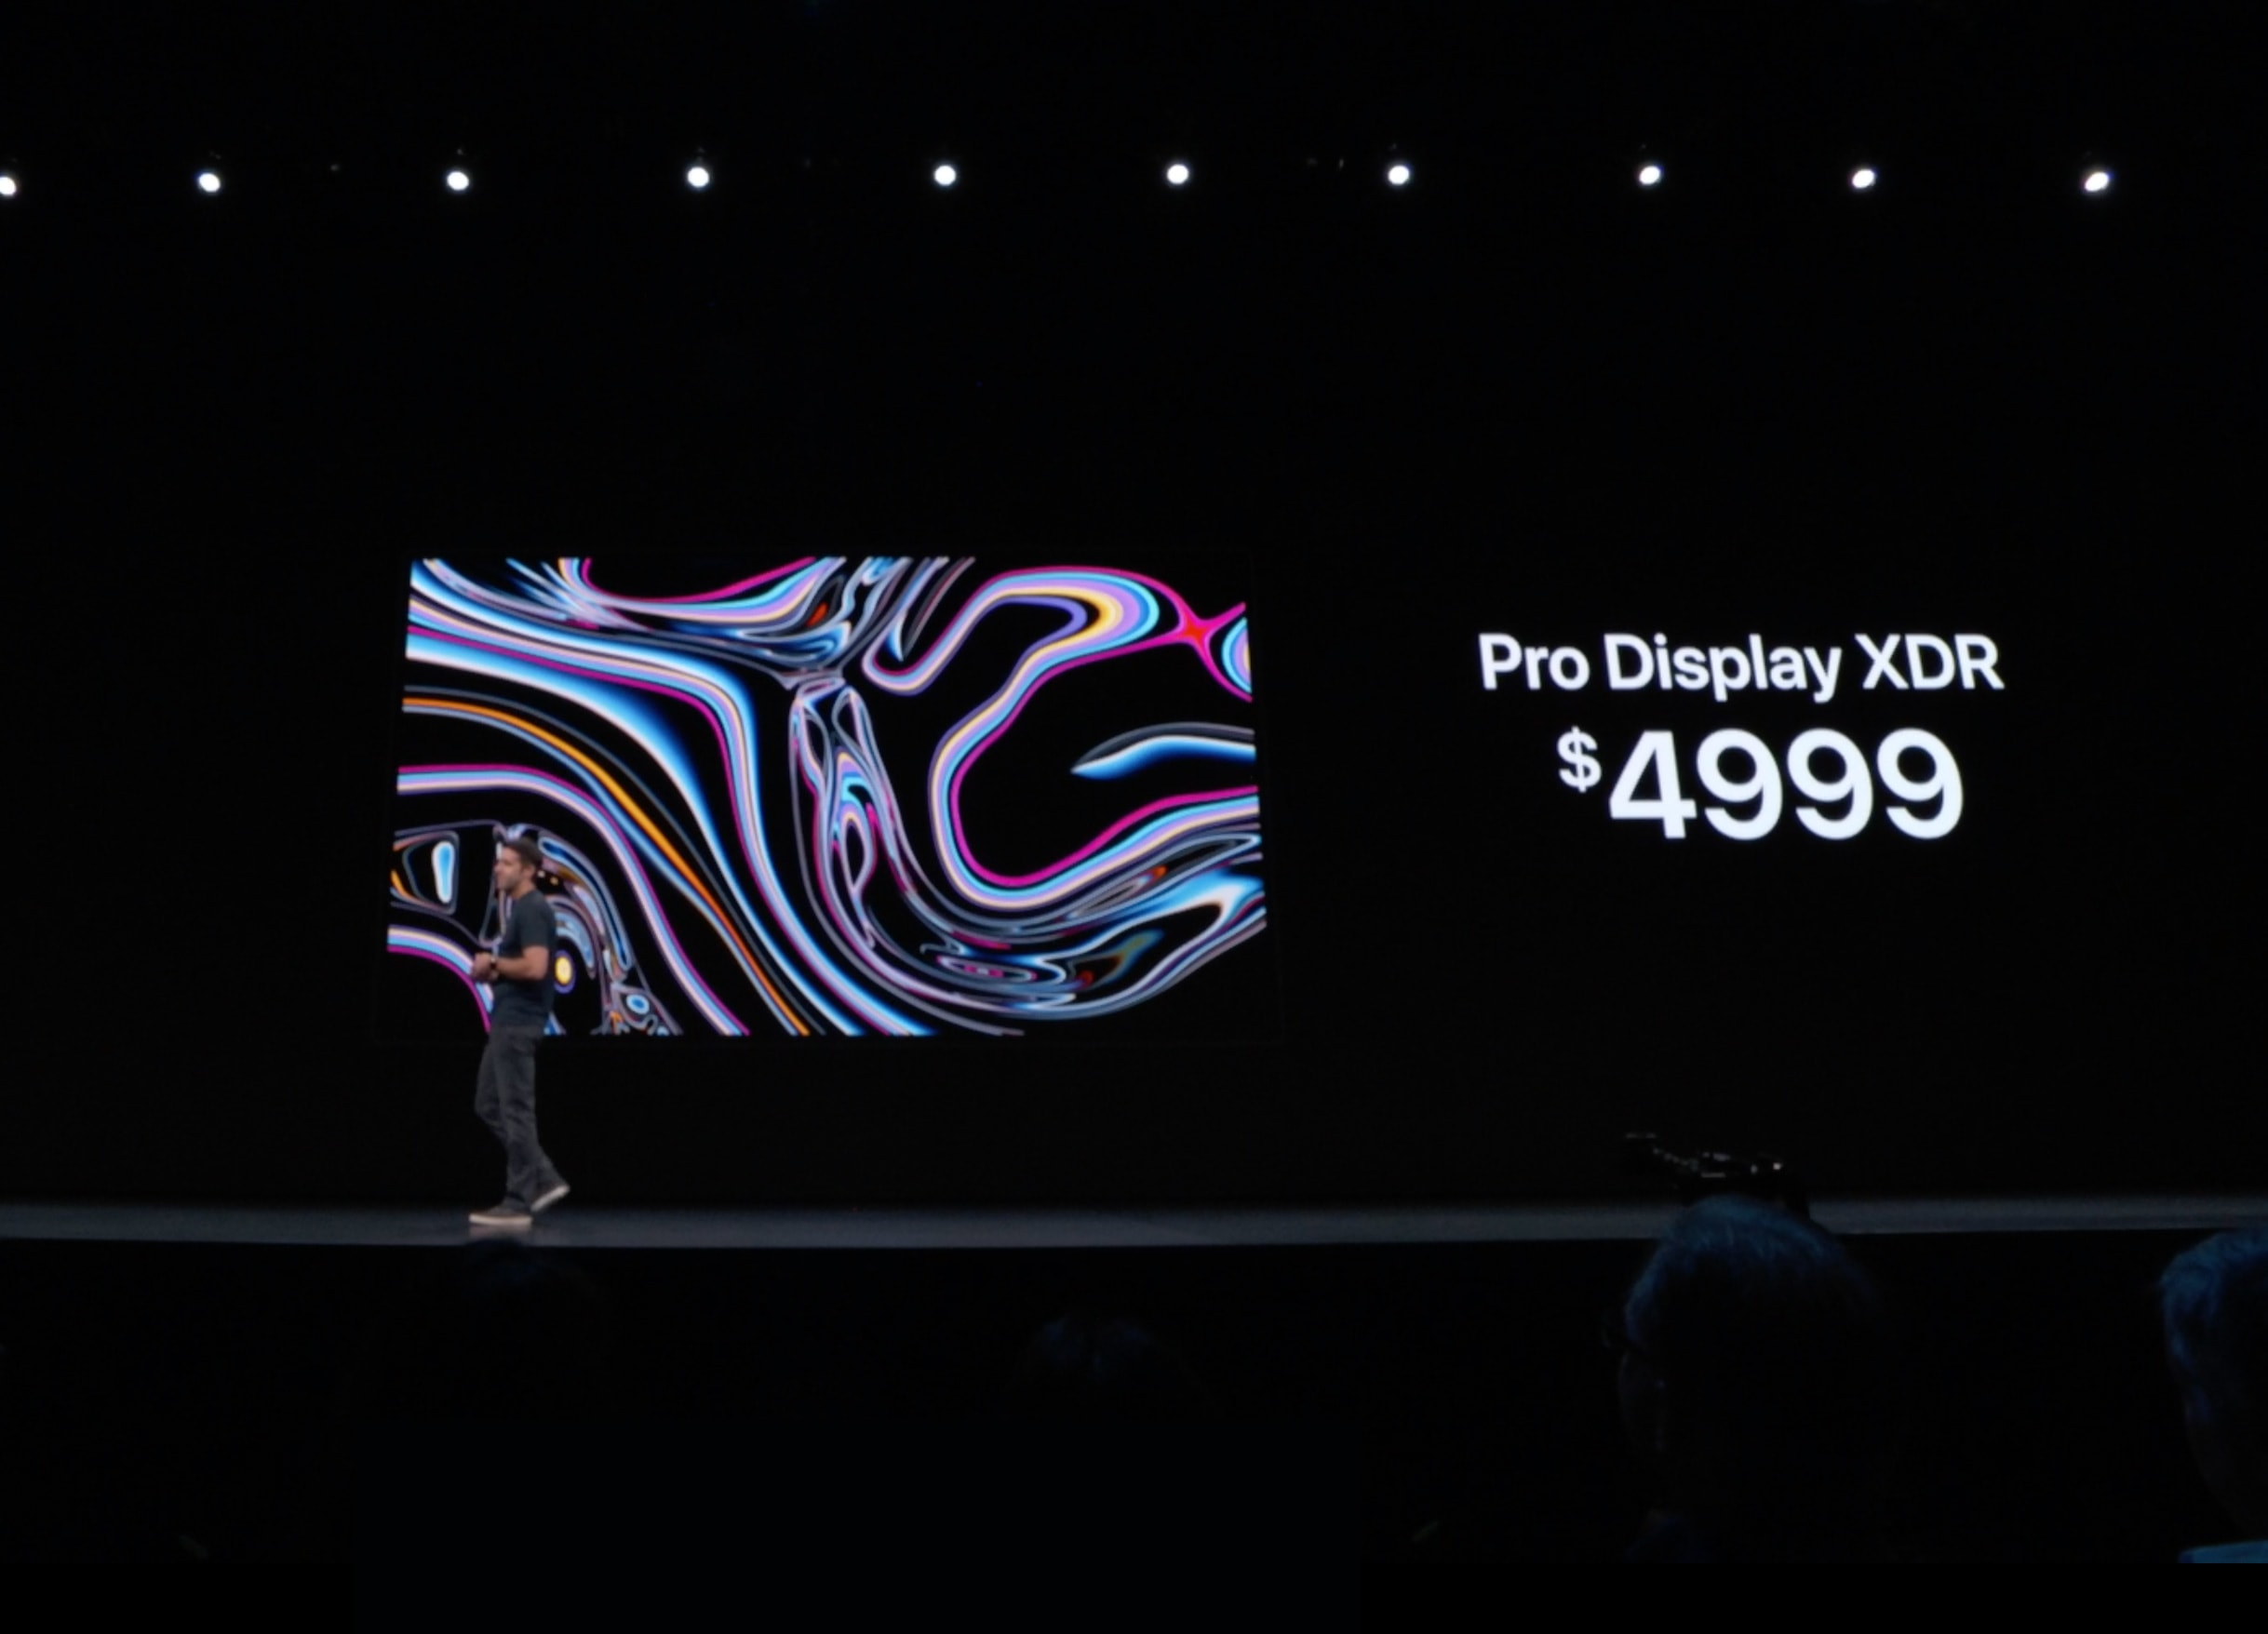 At least the Pro Display XDR didn't cost $43,000